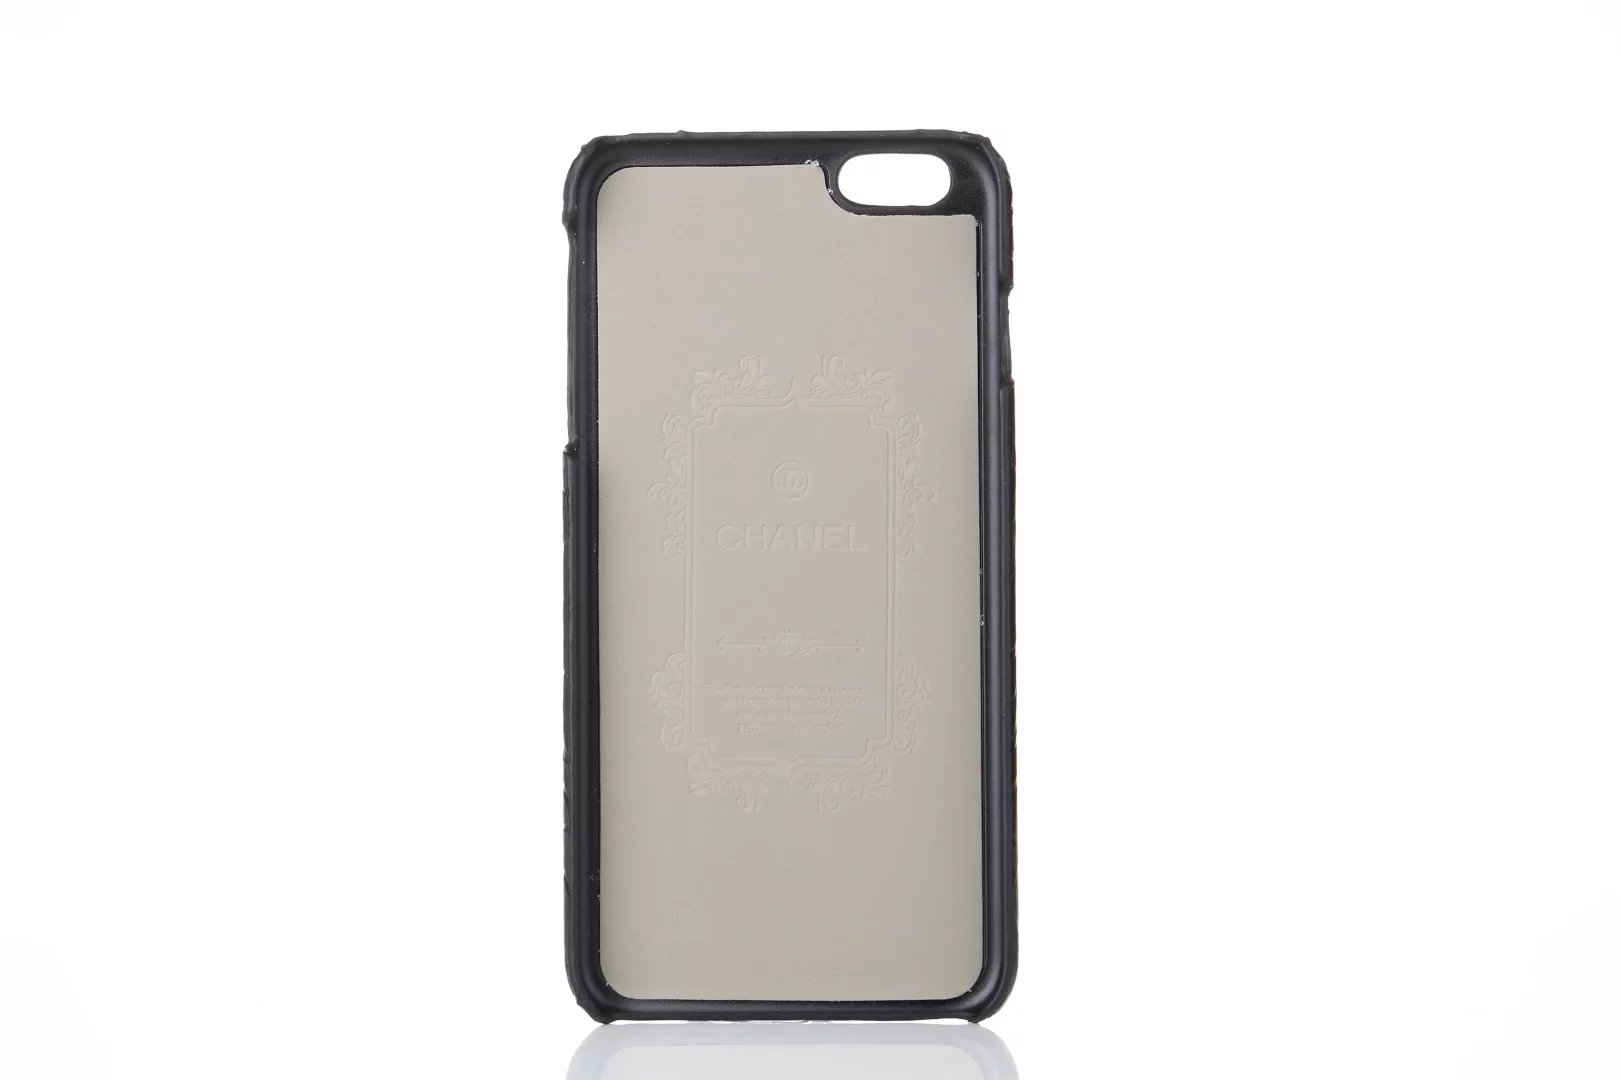 iphone 6 Plus case buy iphone 6 Plus cases in stores fashion iphone6 plus case apple 6 s case good cell phone case brands mophie juice pack plus iphone 6 top cases iphone case with phone cases for 6